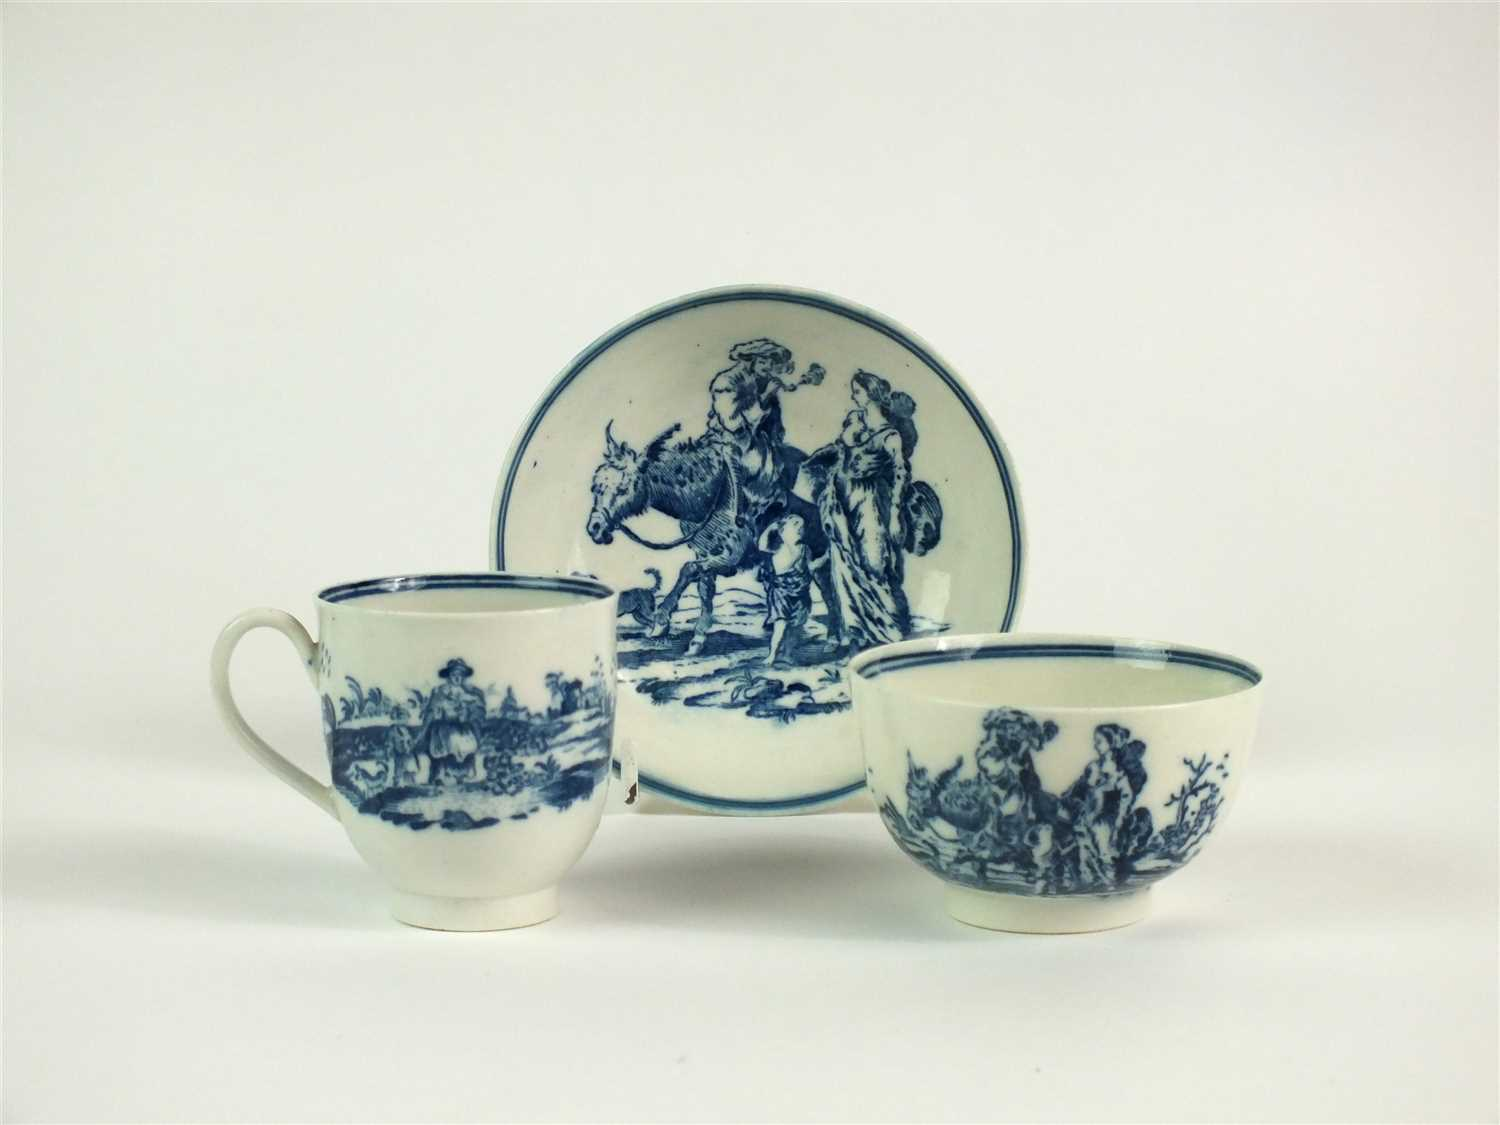 6 - A rare Caughley 'Travellers' trio of coffee cup, tea bowl and saucer